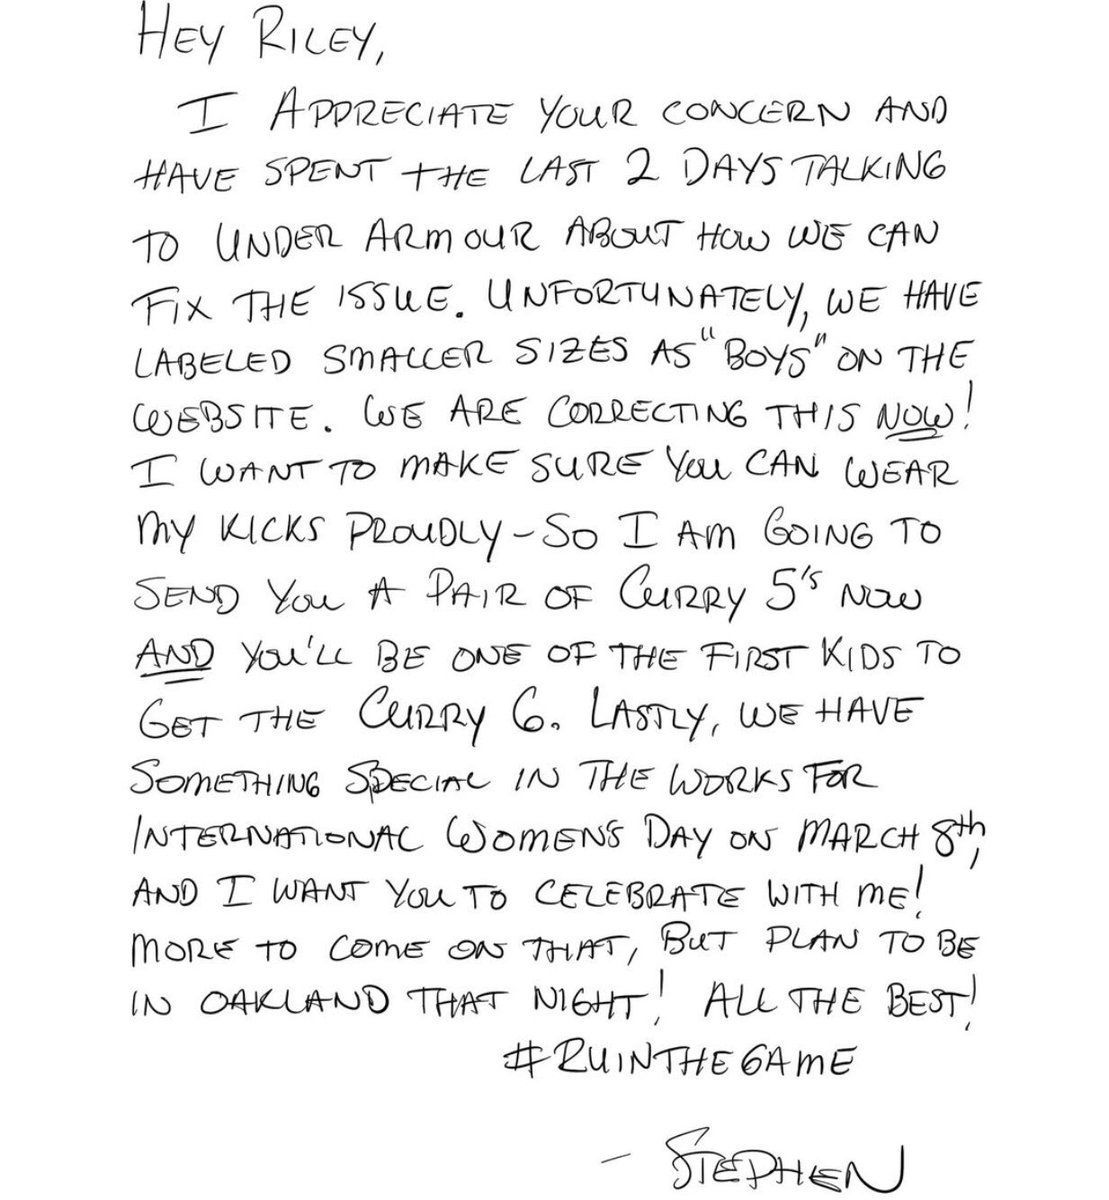 A letter to Napan Riley Morrison from Steph Curry